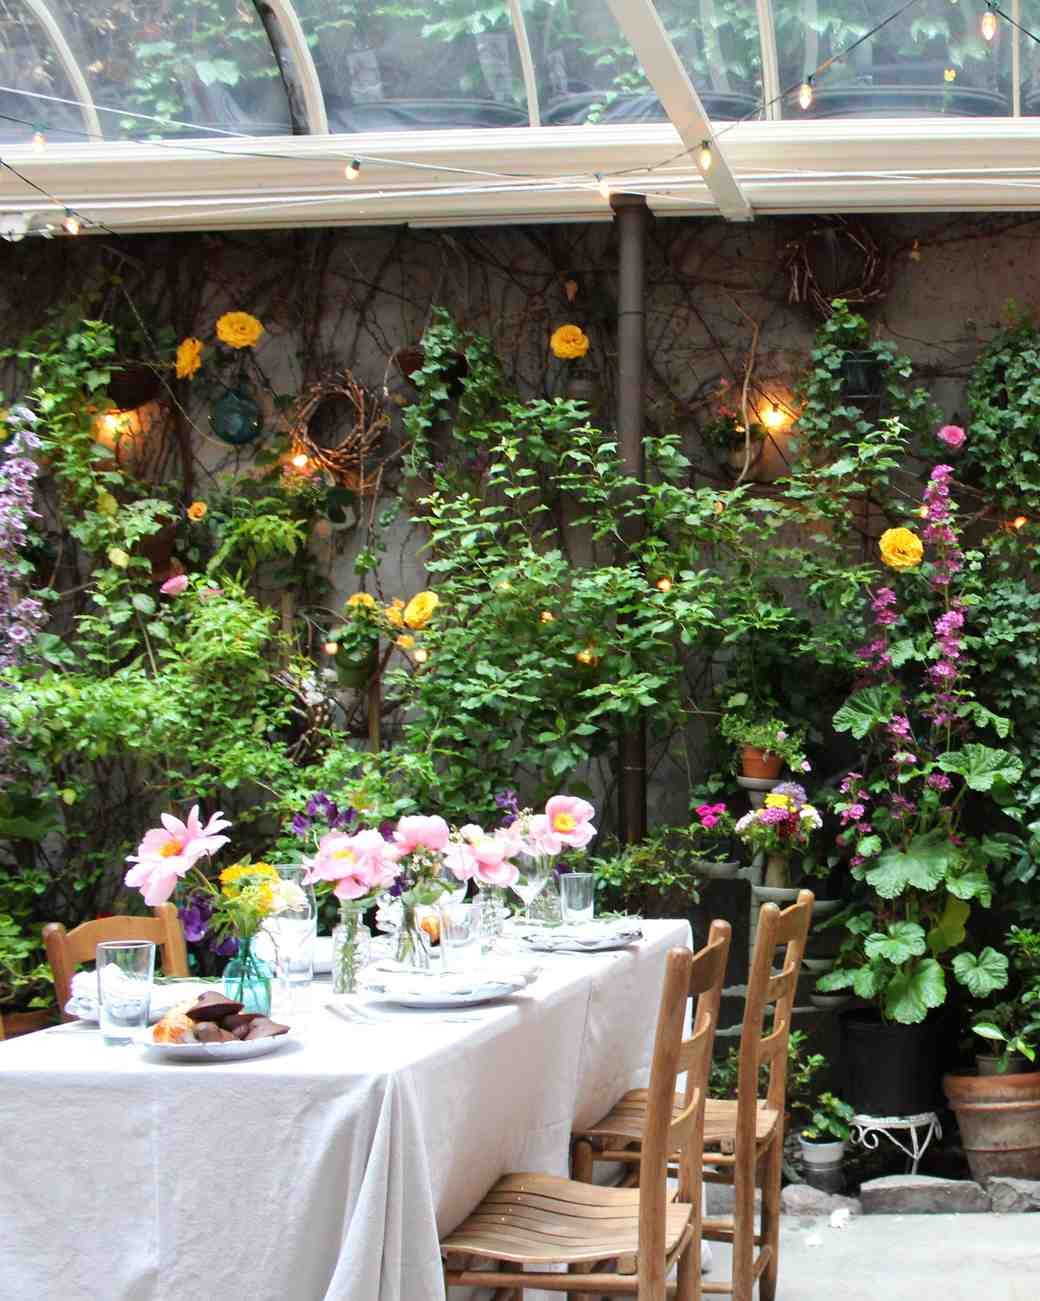 Outdoor Garden Venue for a Bridal Shower